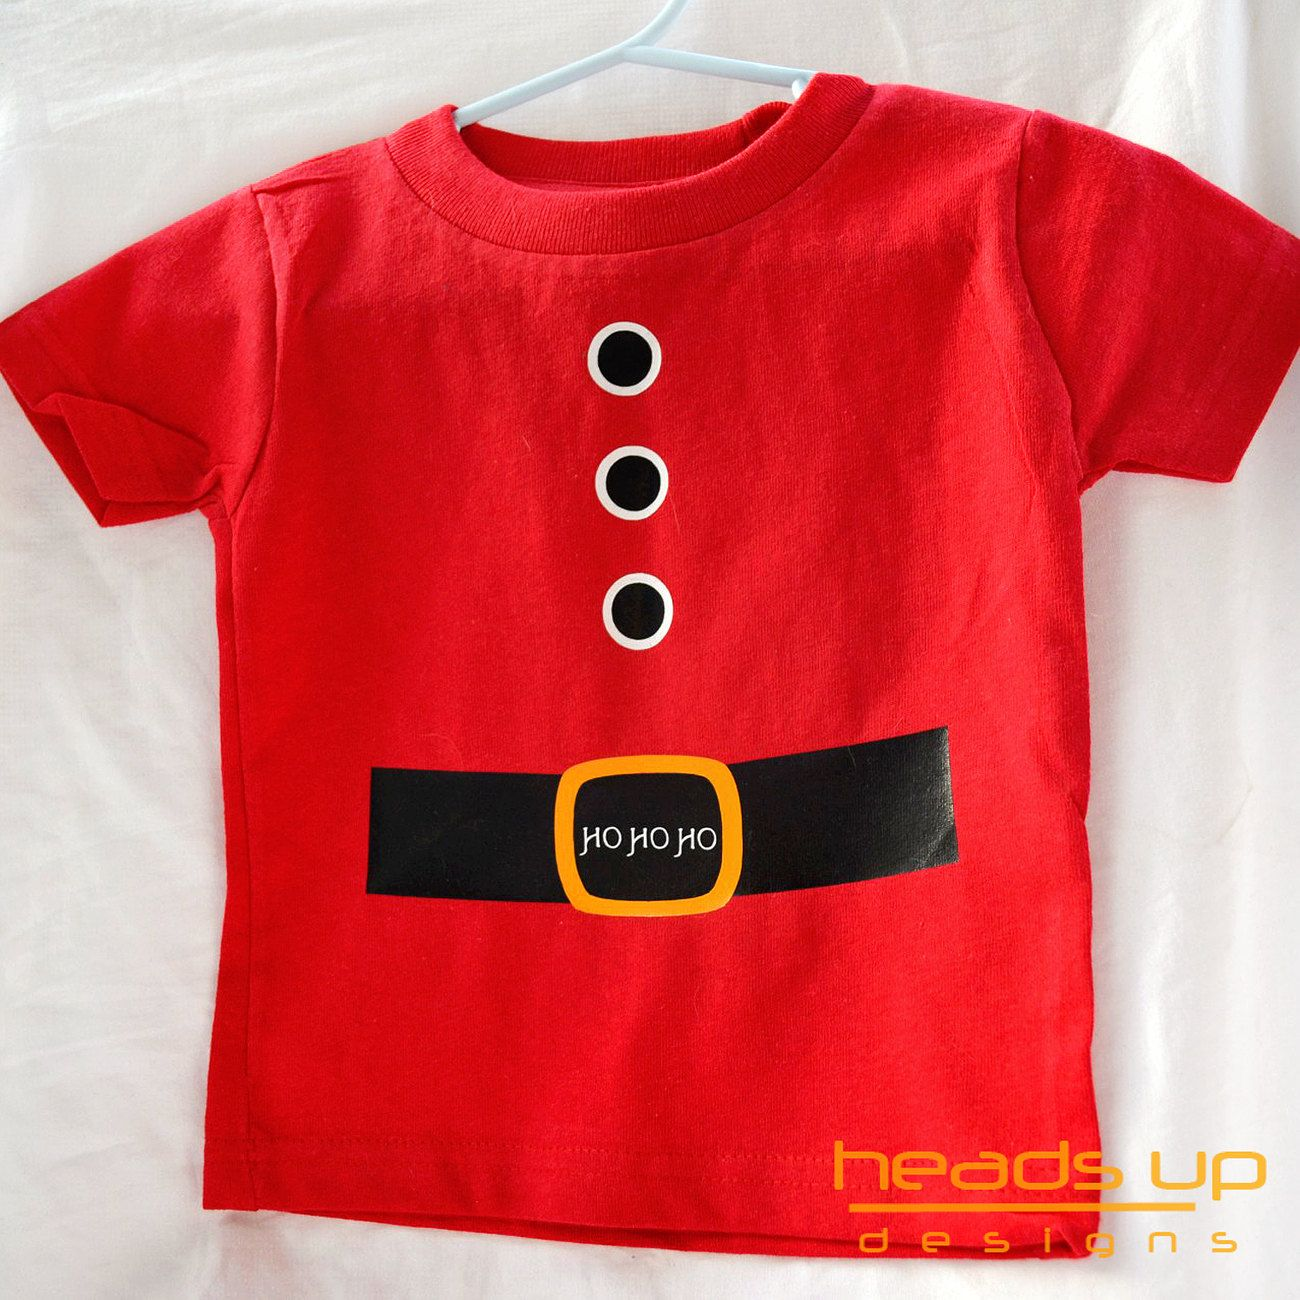 b3a72ced6 Santa+Suit+Shirt+Toddler++Christmas+t+shirts+by+headsupdesigns,+$13.95